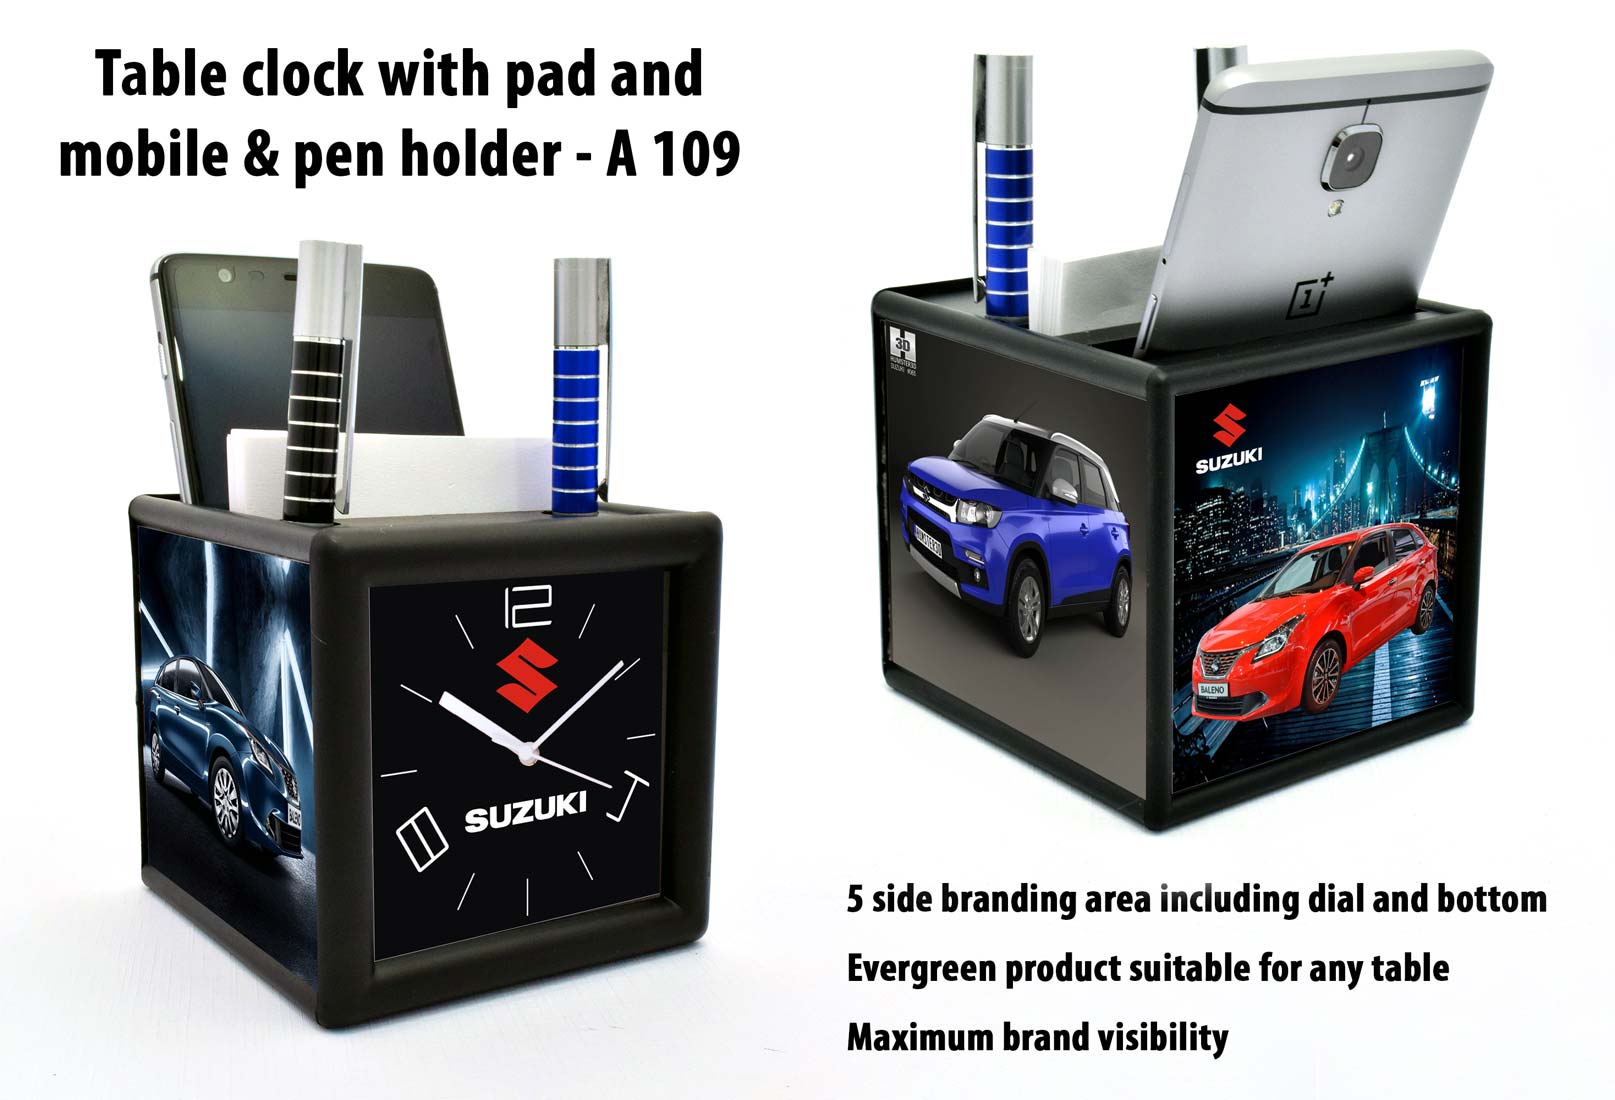 A109 - Table clock with pad and mobile & pen holder